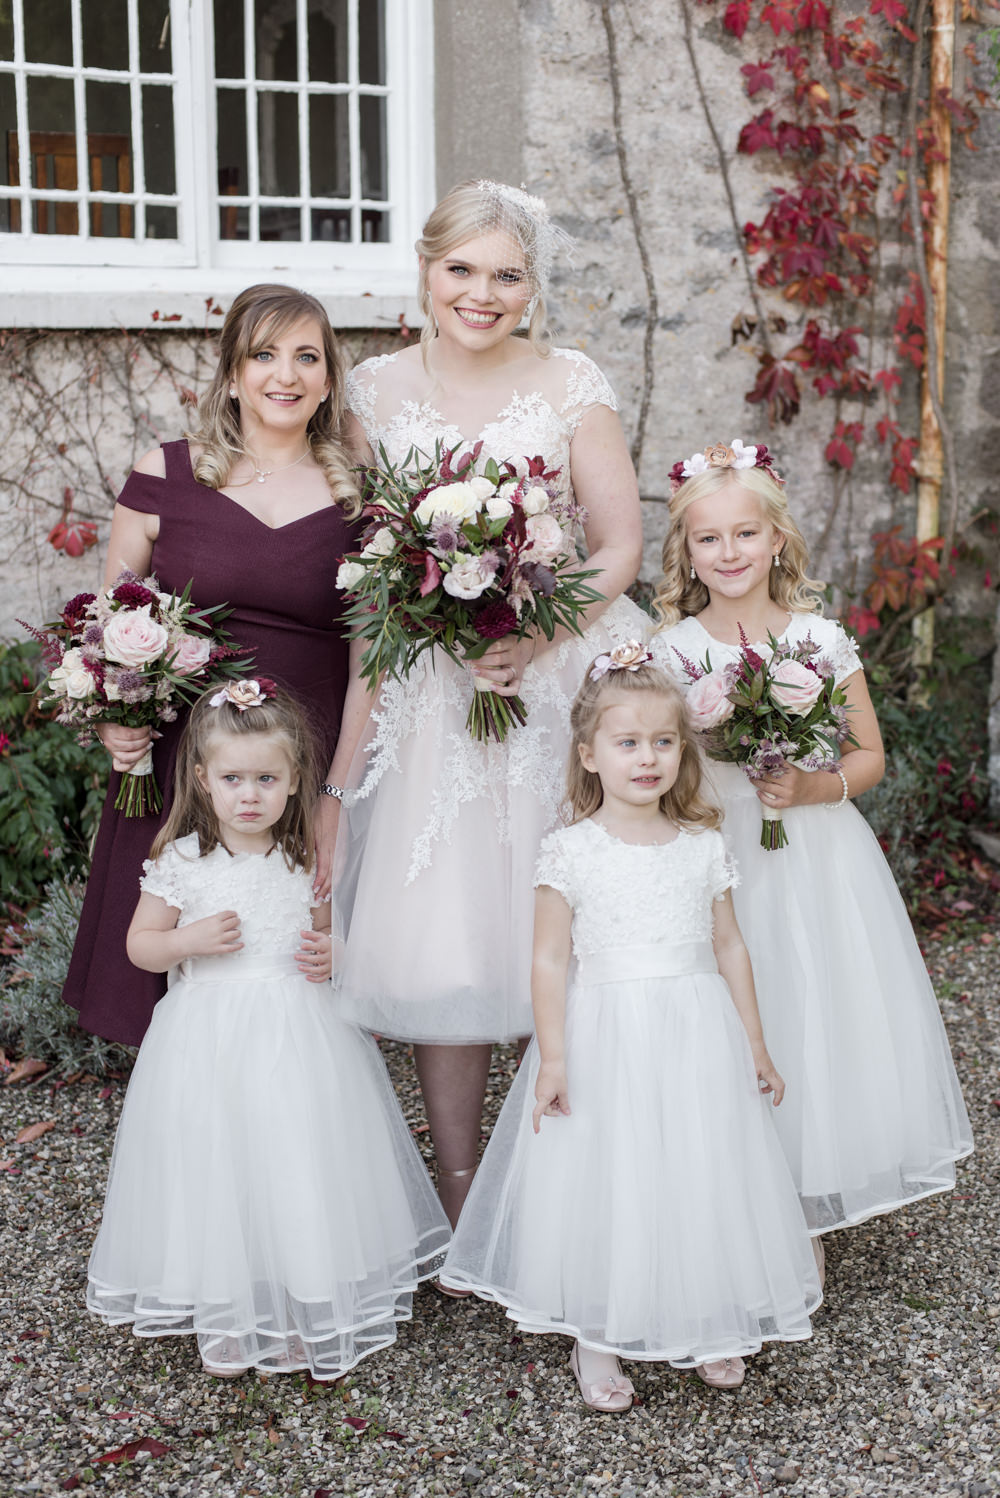 Bride Bridal Short Tea Length Dress Lace V Neck Short Sleeved Bridesmaids Flower Girls White Blush Burgundy Penally Abbey Wedding Eleanor Jane Photography